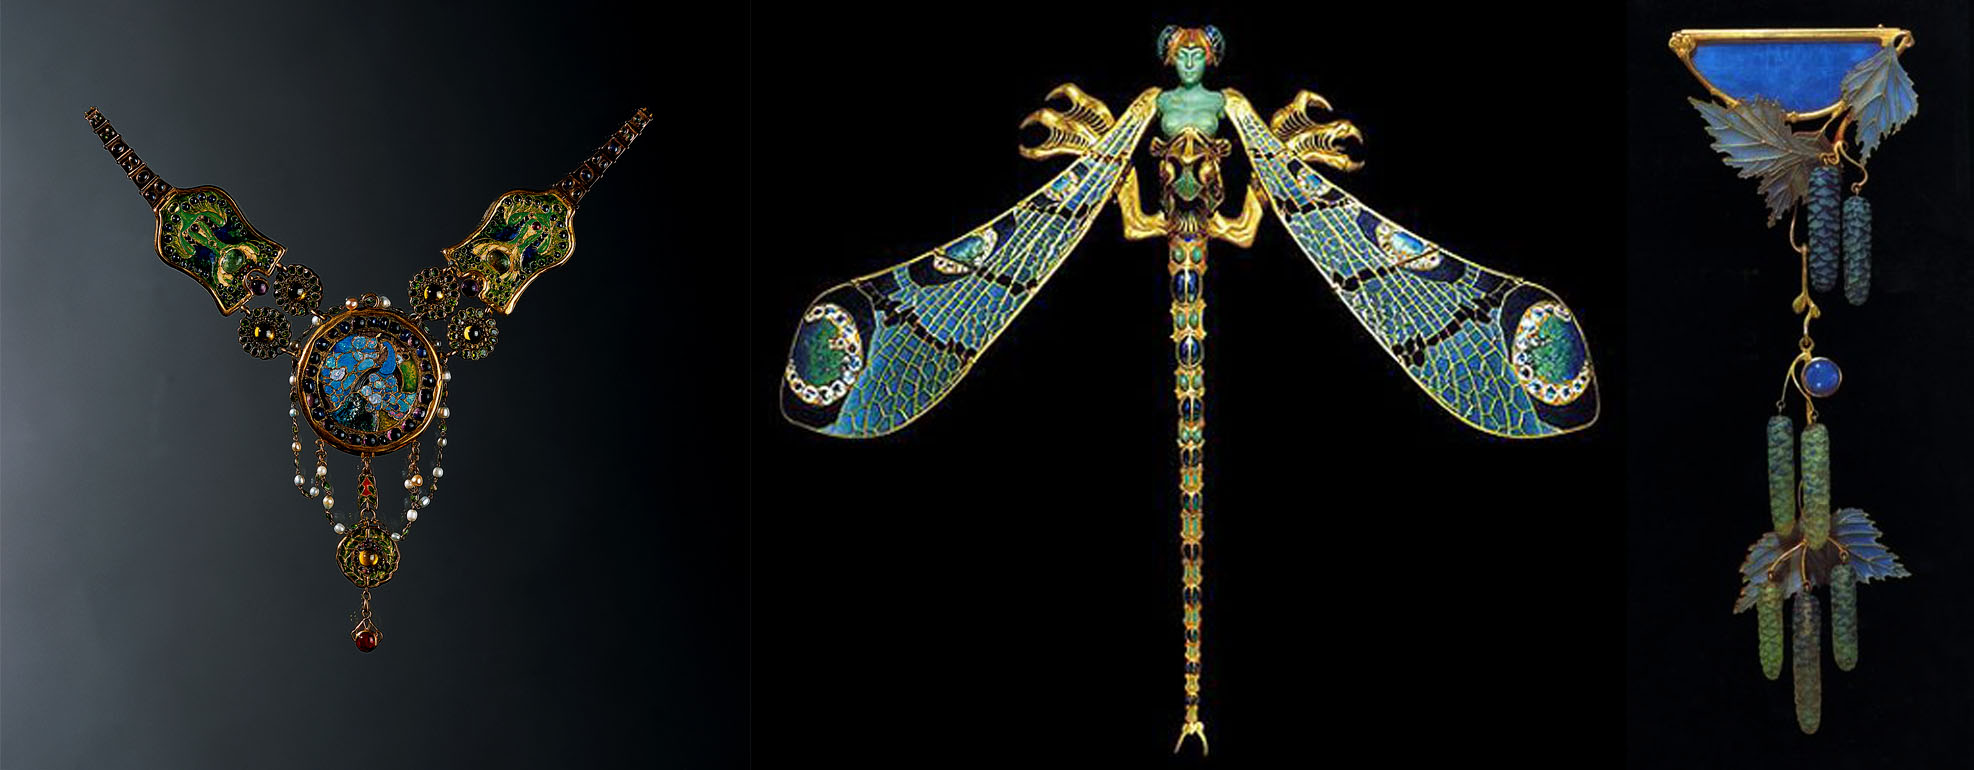 "Left: The Peacock Necklace, 18 karat gold, enameling (both cloisonne and pliqué a jour,) opal, amethyst, ruby, sapphire, demantoid garnet, emerald, chrysoberyl, and pearl. c 1903-06 by Tiffany & Co. Center: ""Dragonfly Lady"" corsage ornament made of 18 karat gold, pliqué a jour enamel, chrysoprase, moonstones, and diamonds, designed by René Lalique, c. 1903 Right: corsage ornament 'Willow Catkins' made of 18 karat gold, pliqué a jour enameling, limoge enameling, and opals c. 1904 - by René Lalique"